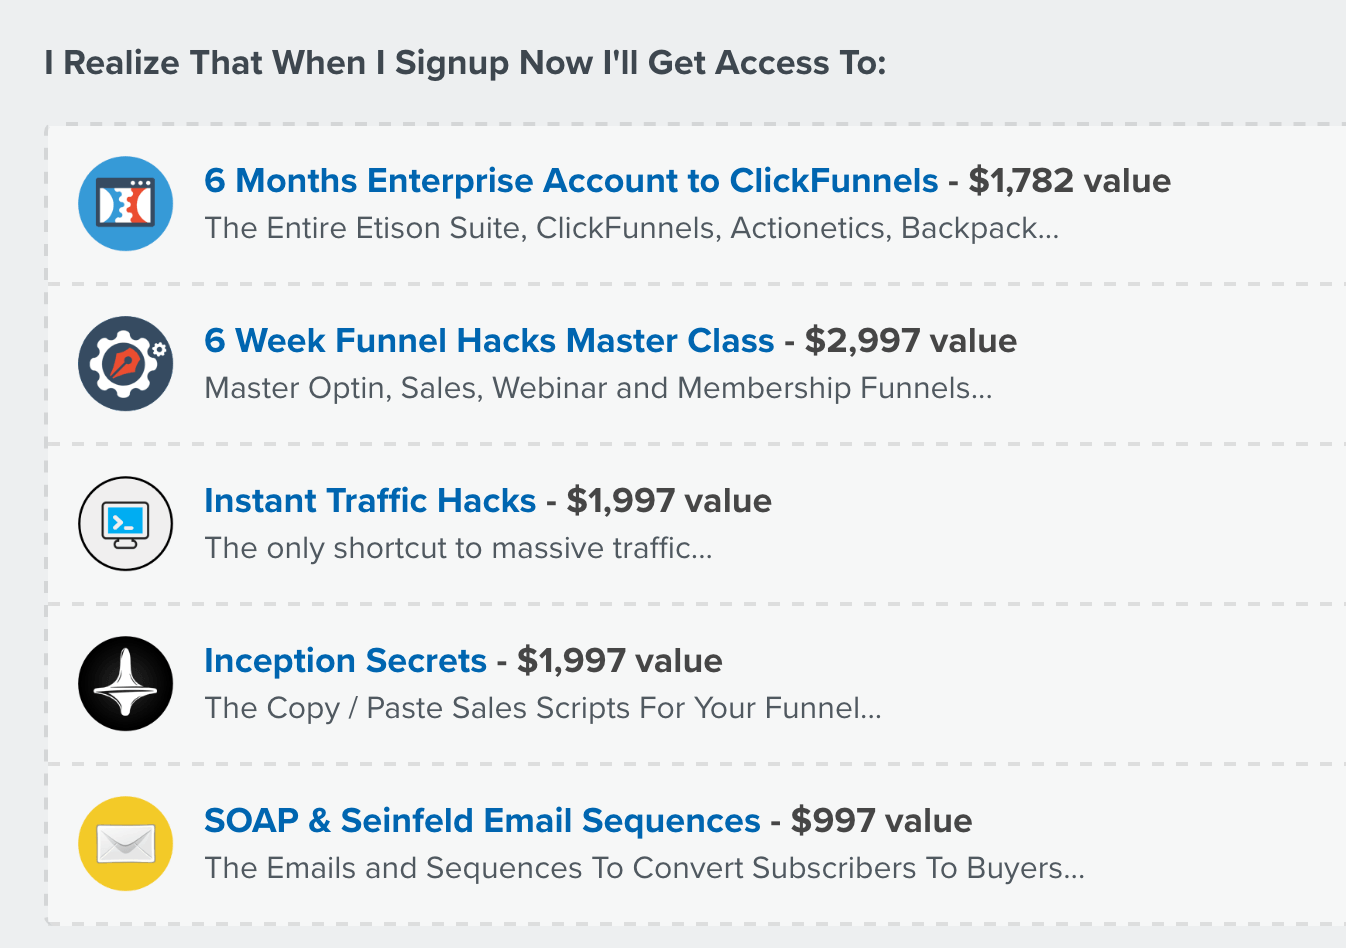 Clickfunnels Samples For Financial Advisors